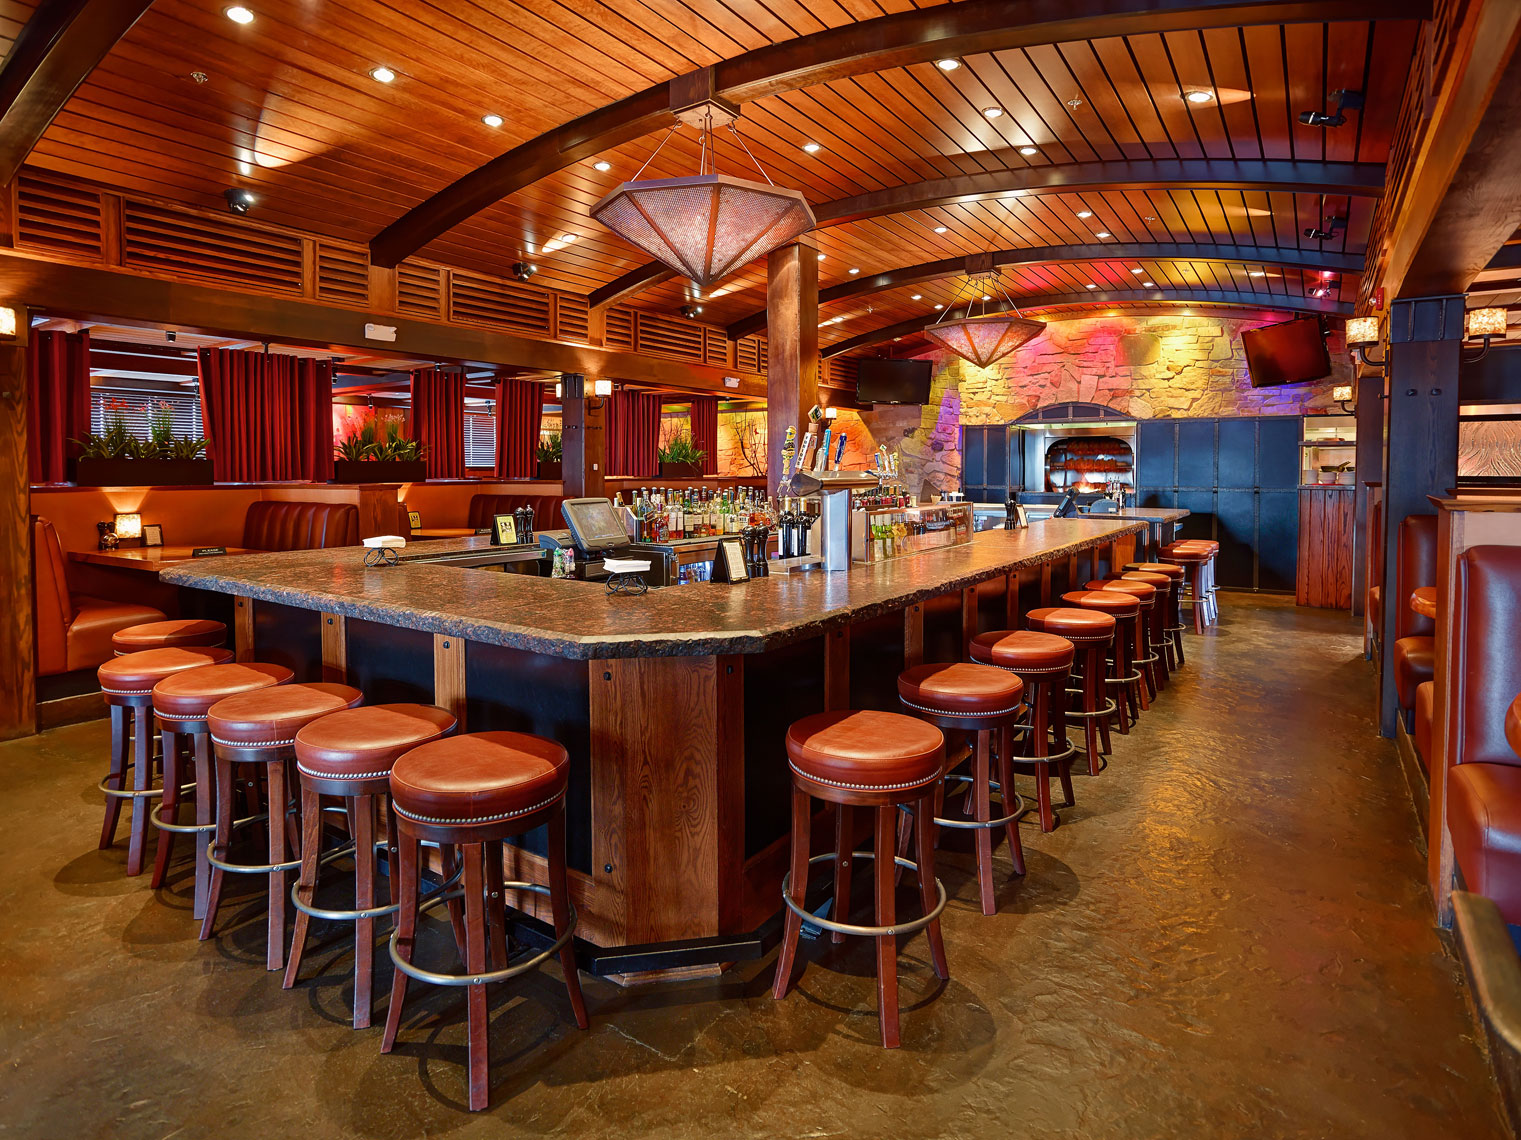 Red Stone Restaurant/central bar with stools/architectural photo